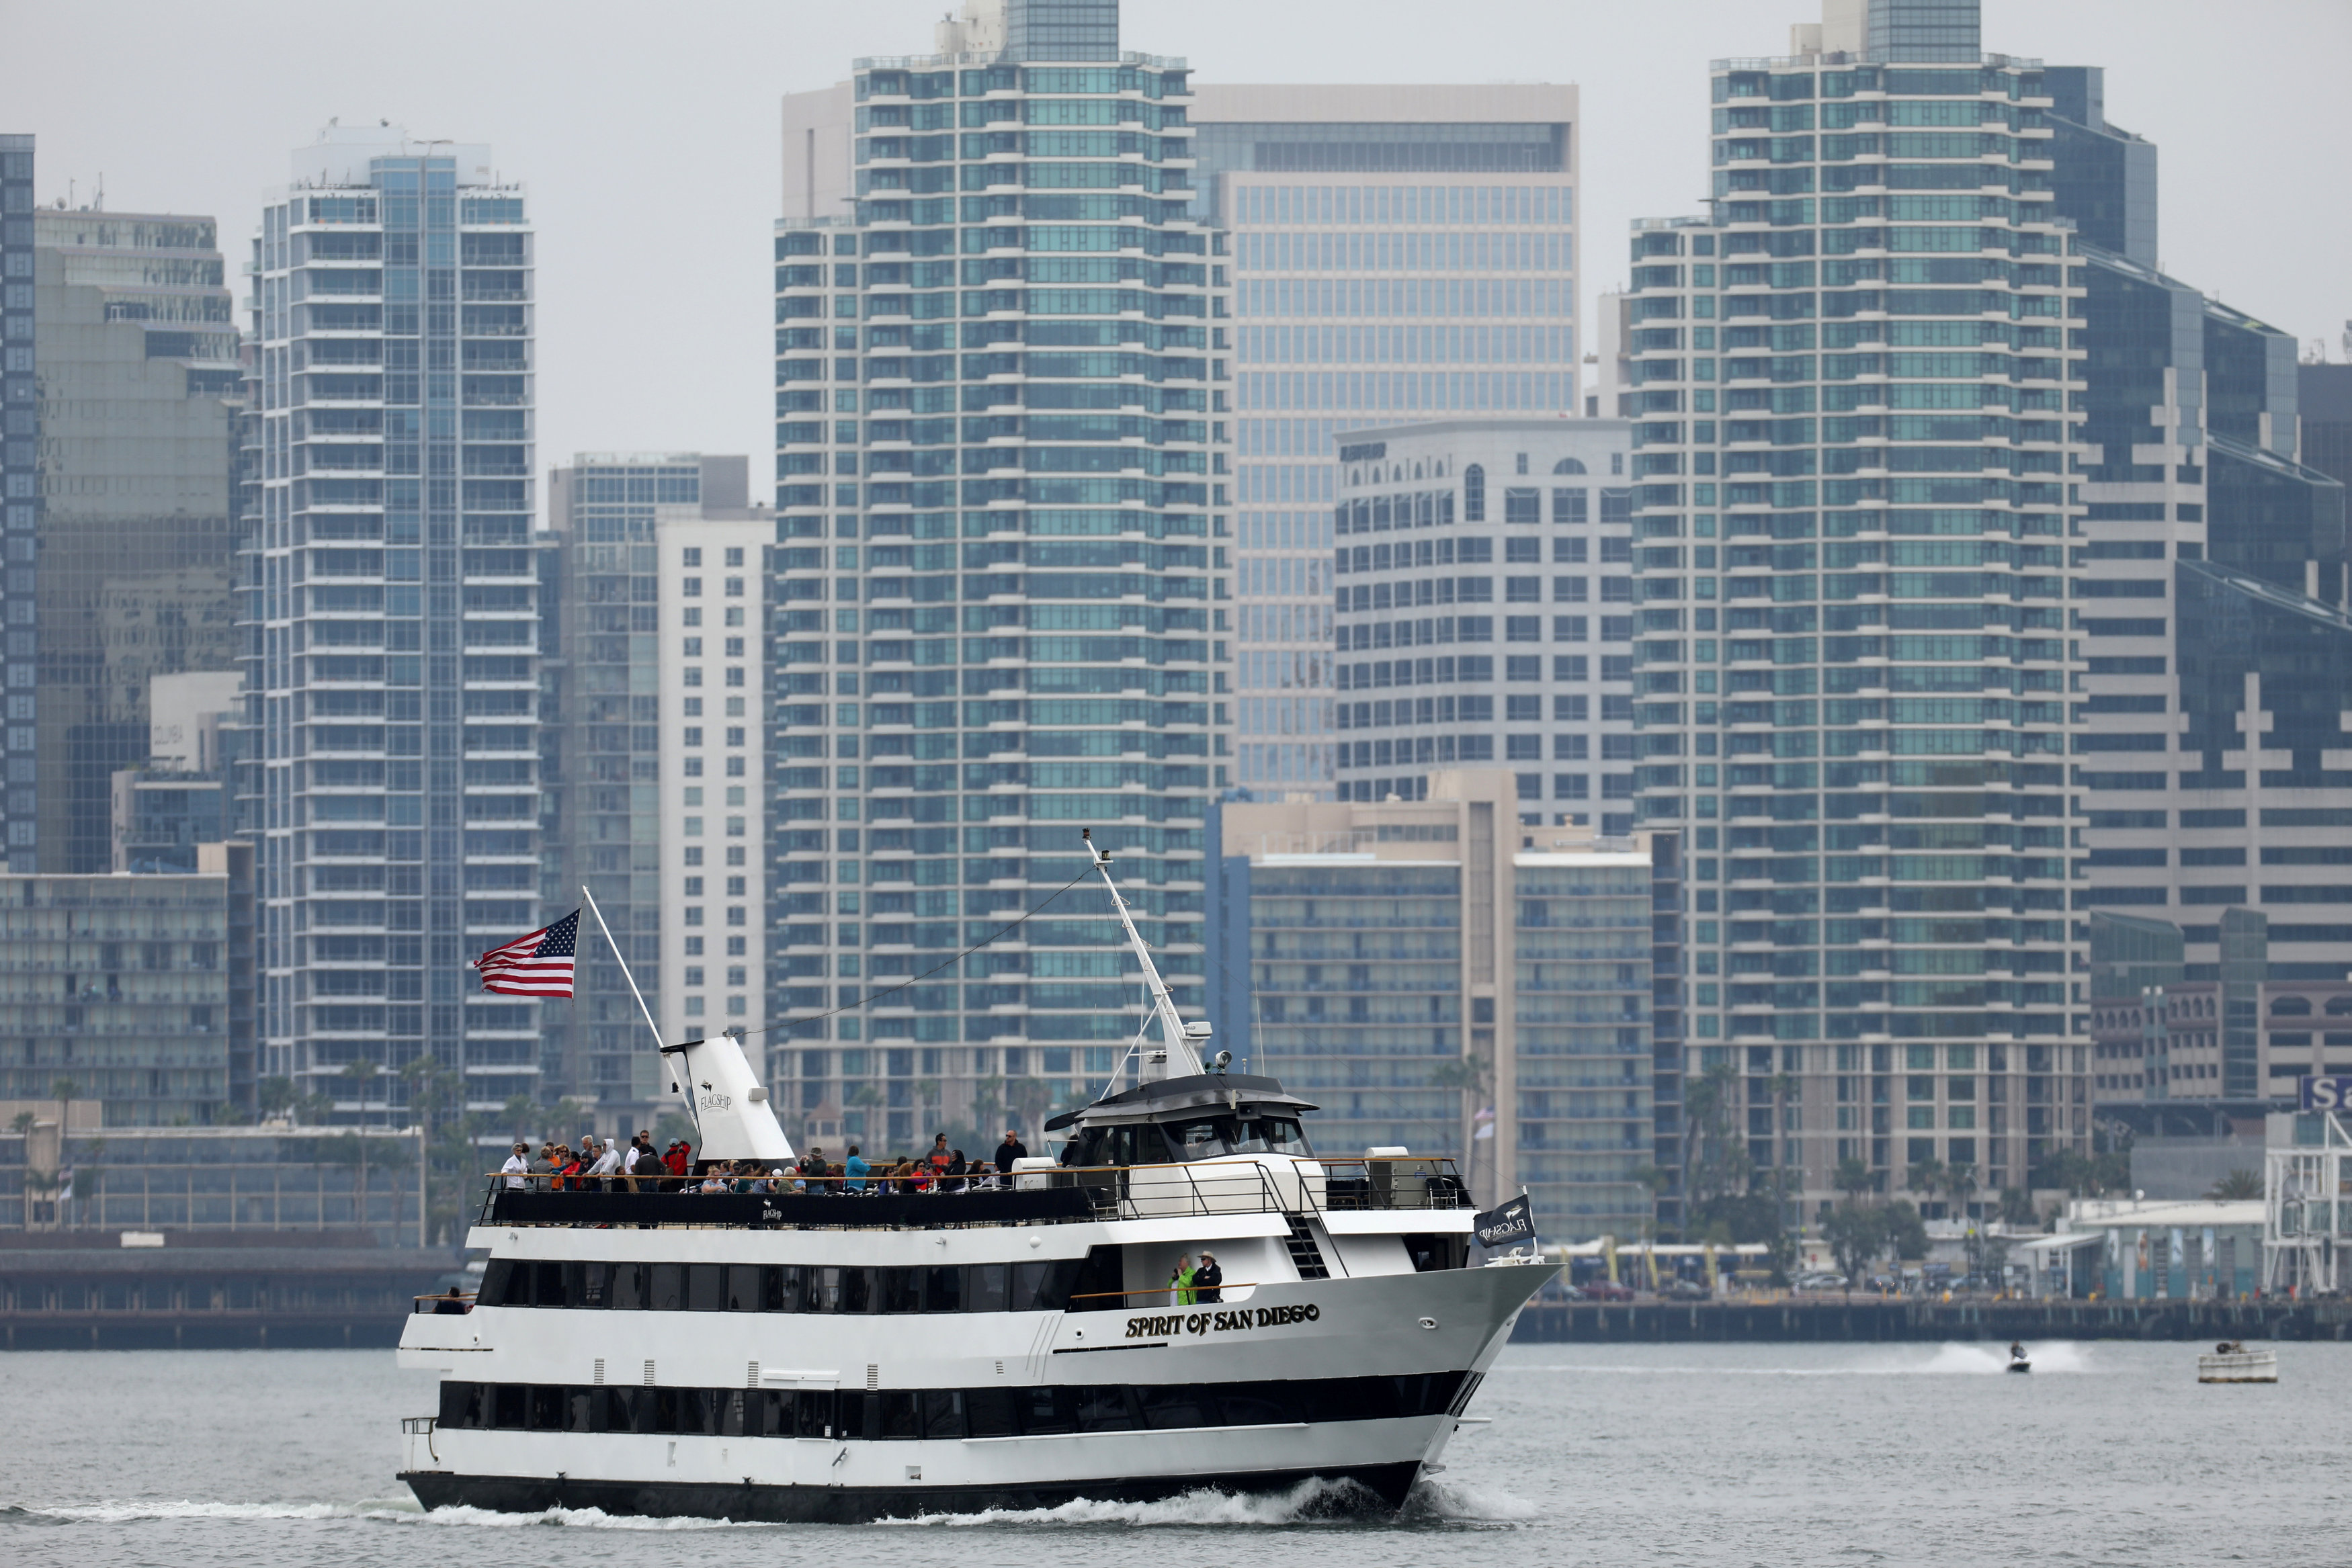 FILE PHOTO: A tourist sightseeing boat motors through San Diego harbor in San Diego, California, U.S., June 5, 2017. REUTERS/Mike Blake/File Photo